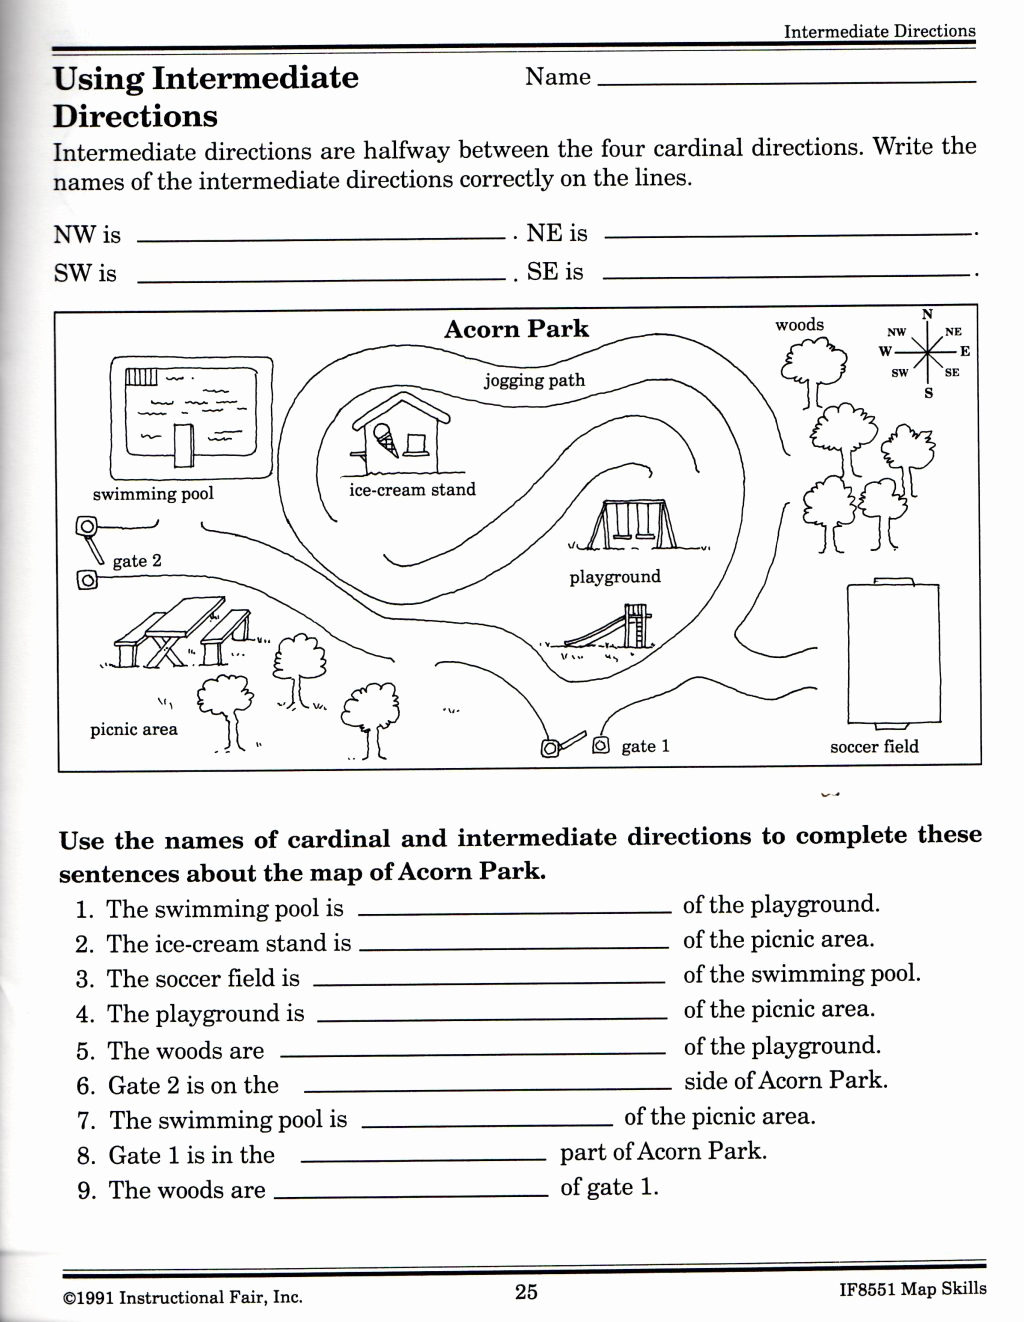 4th Grade Map Skills Worksheets Best Of Map Skills Worksheets for Print Map Skills Worksheets